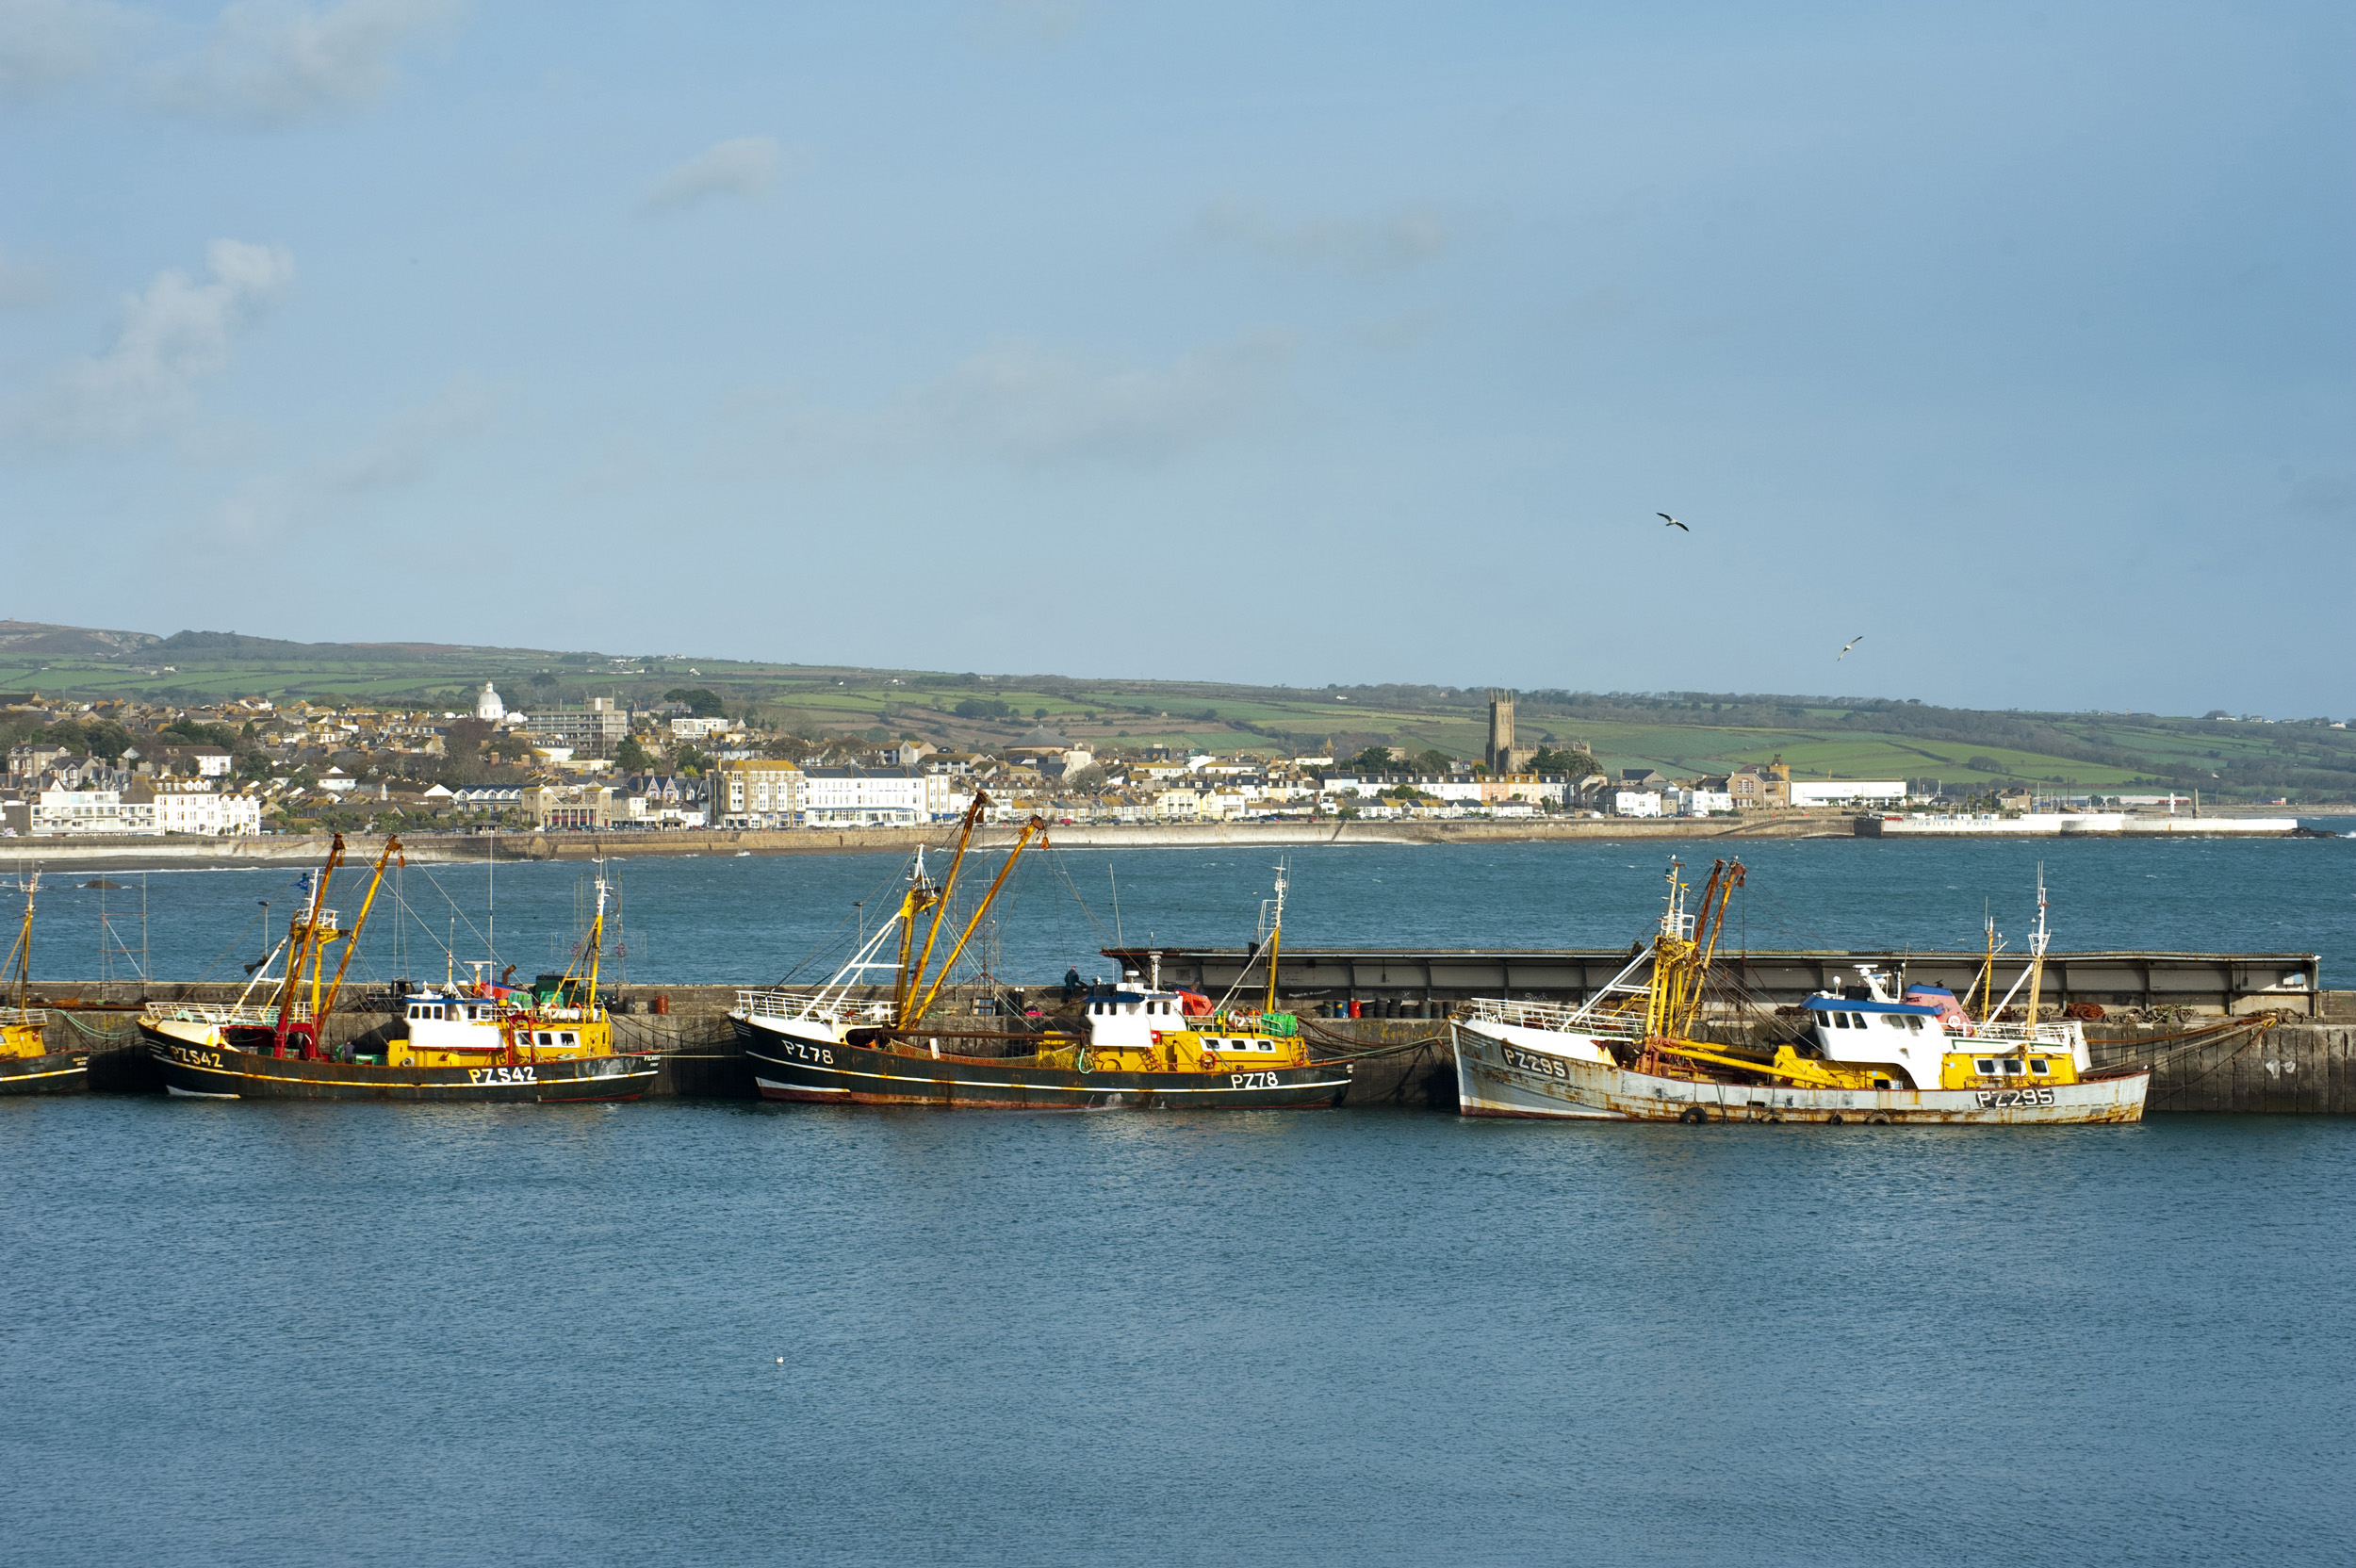 Looking out across newlyn harbour towards the town of penzance, cornwall